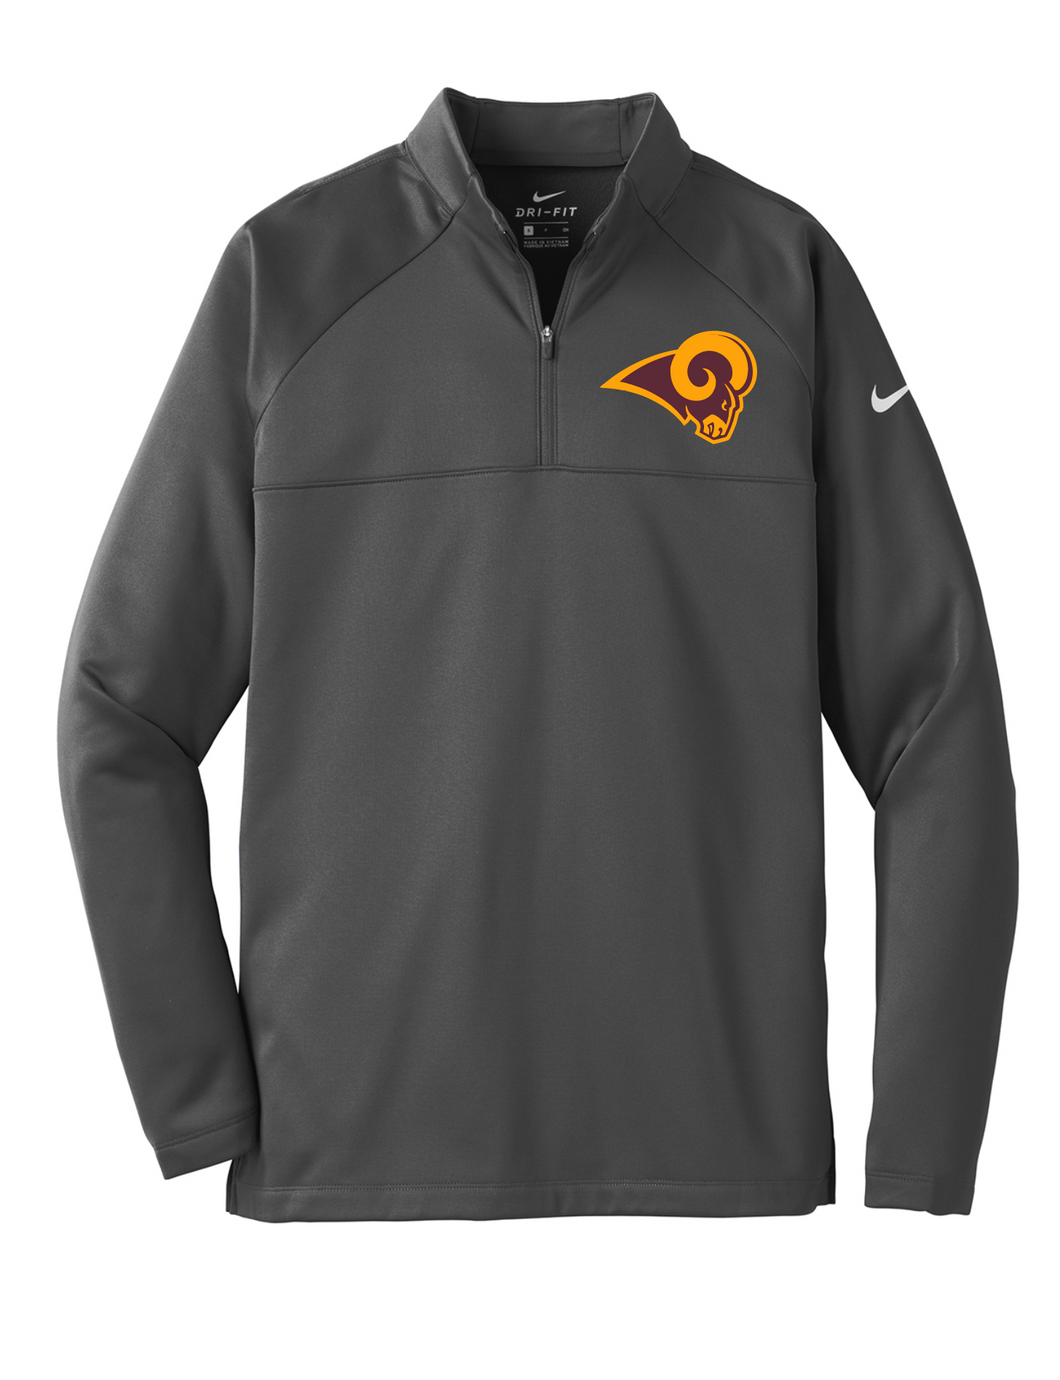 Ross Swimming and Diving Nike Therma-FIT Fleece 1/4 Zip